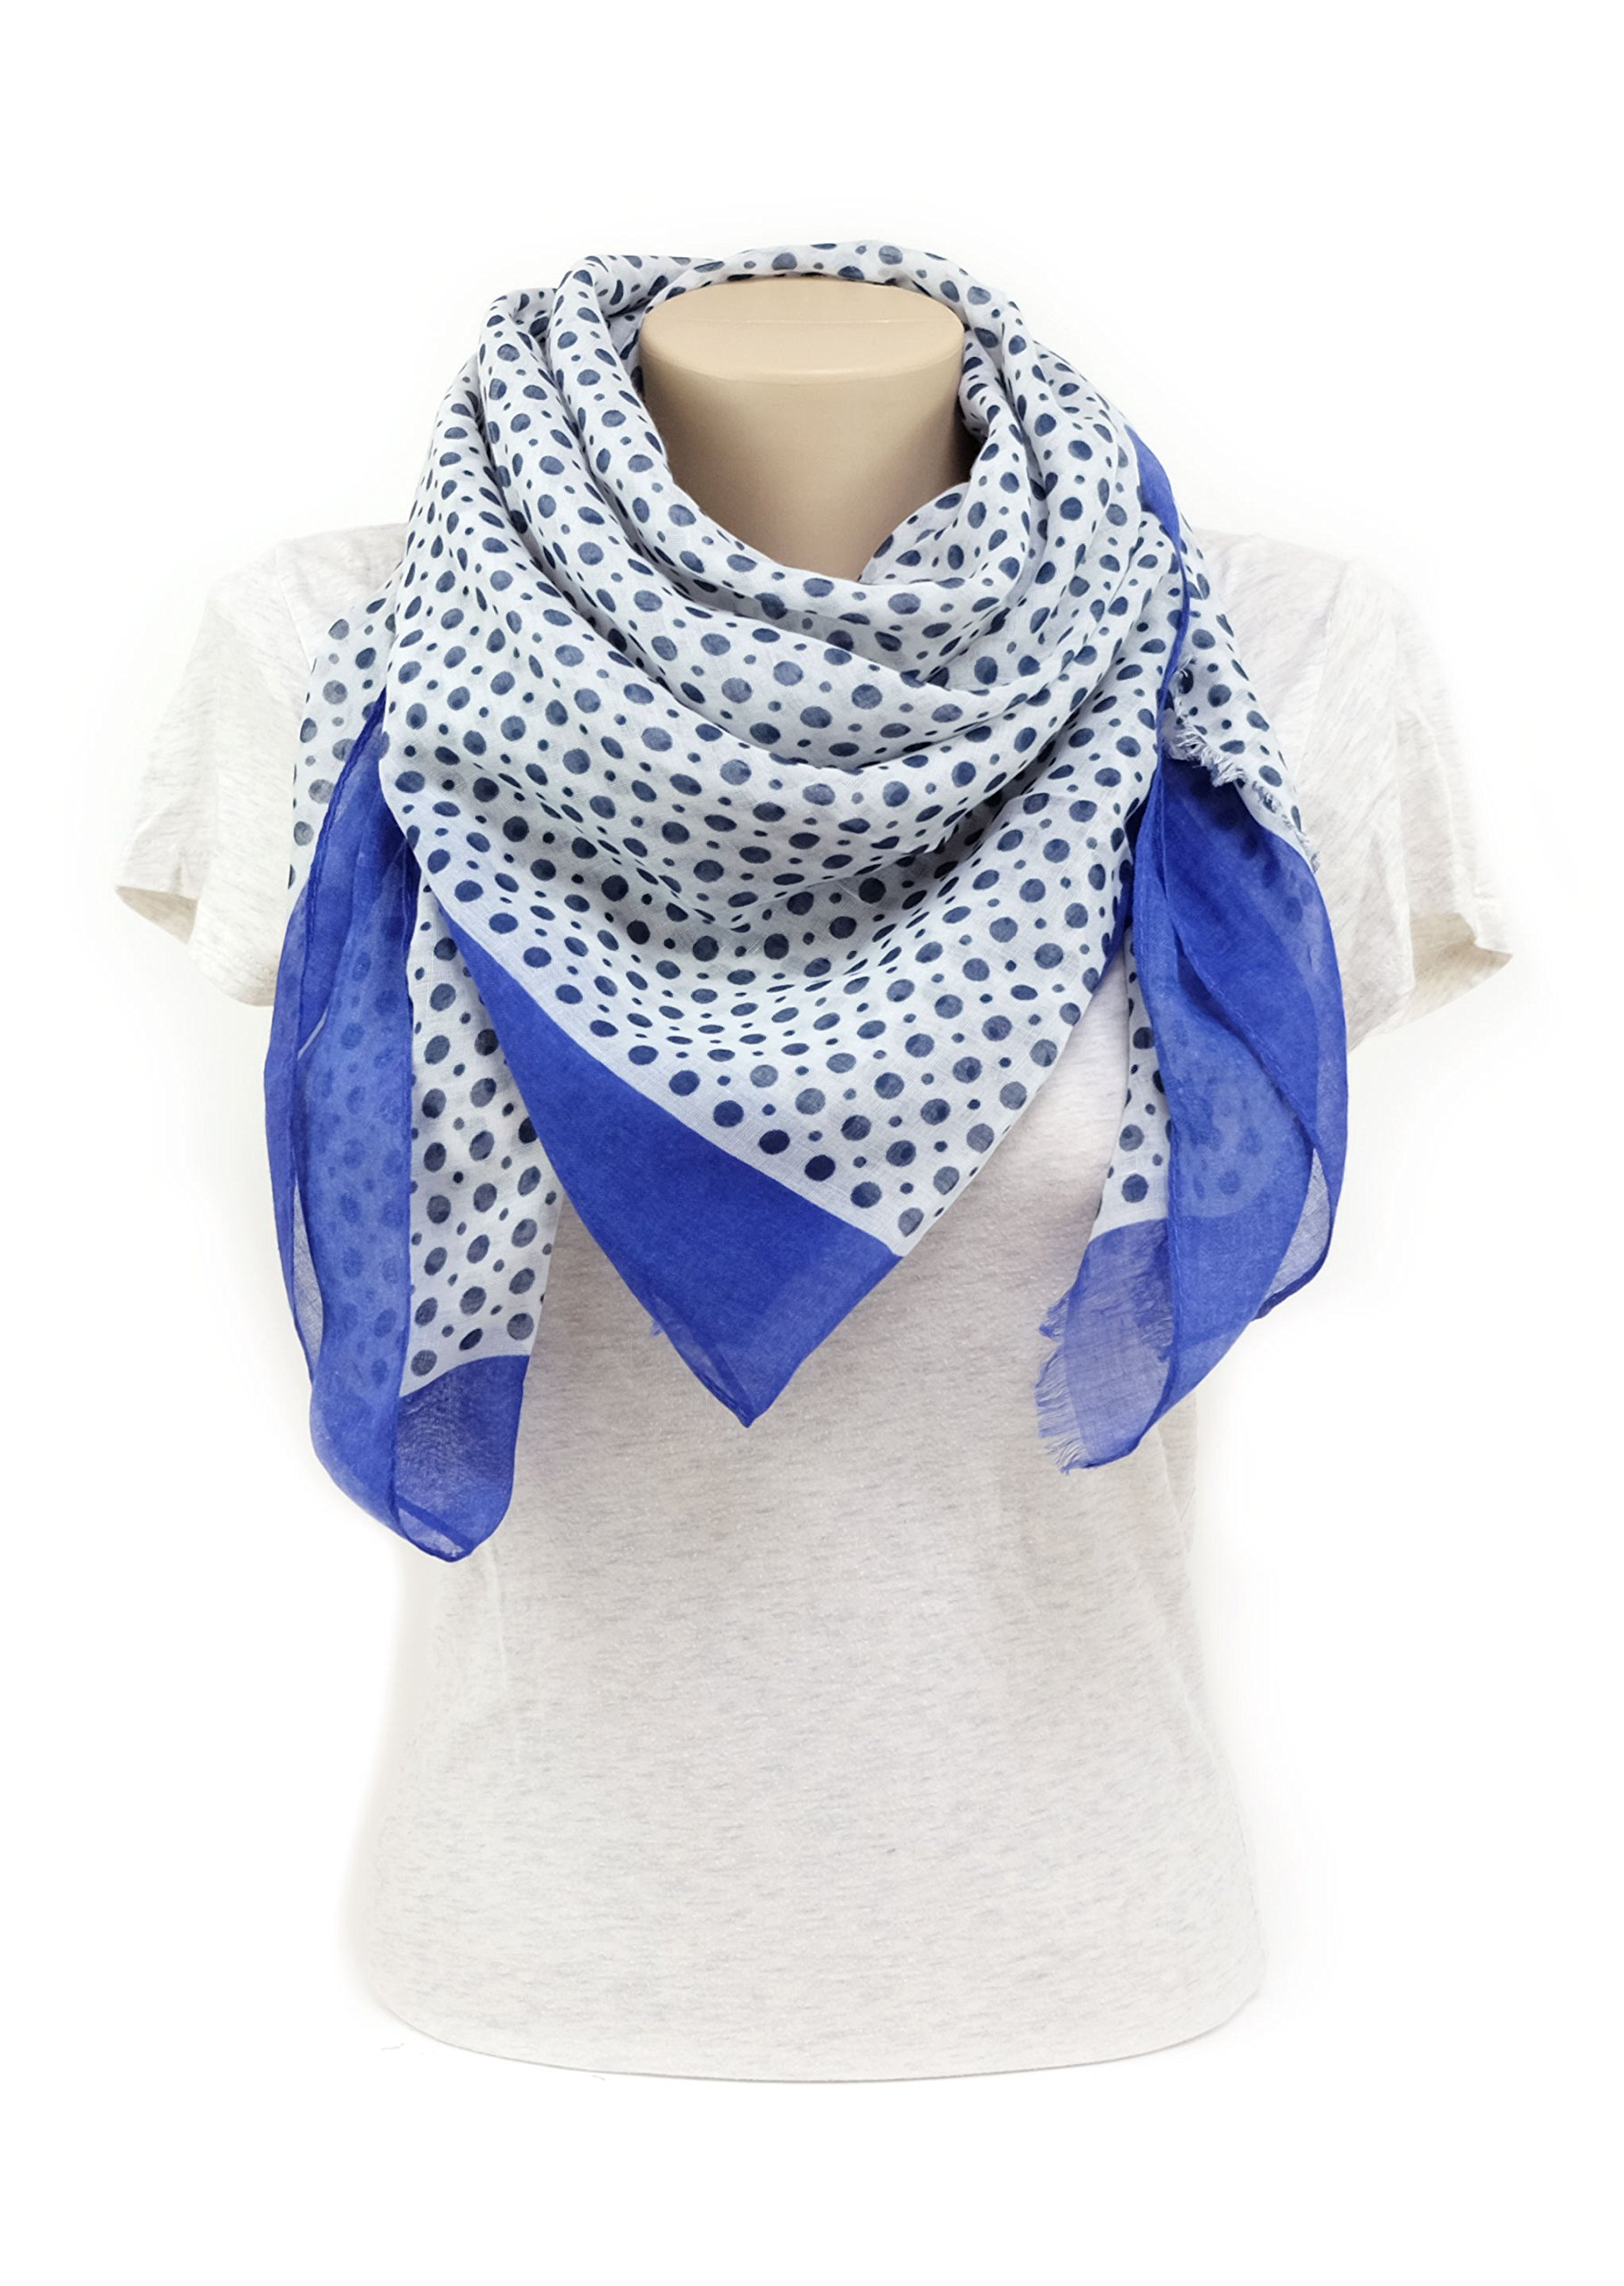 Scarves for Women by MIMOSITO Fashion Lightweight Elegant Geometric Patterned Wrap (Polka Dot-Blue) by MIMOSITO (Image #4)